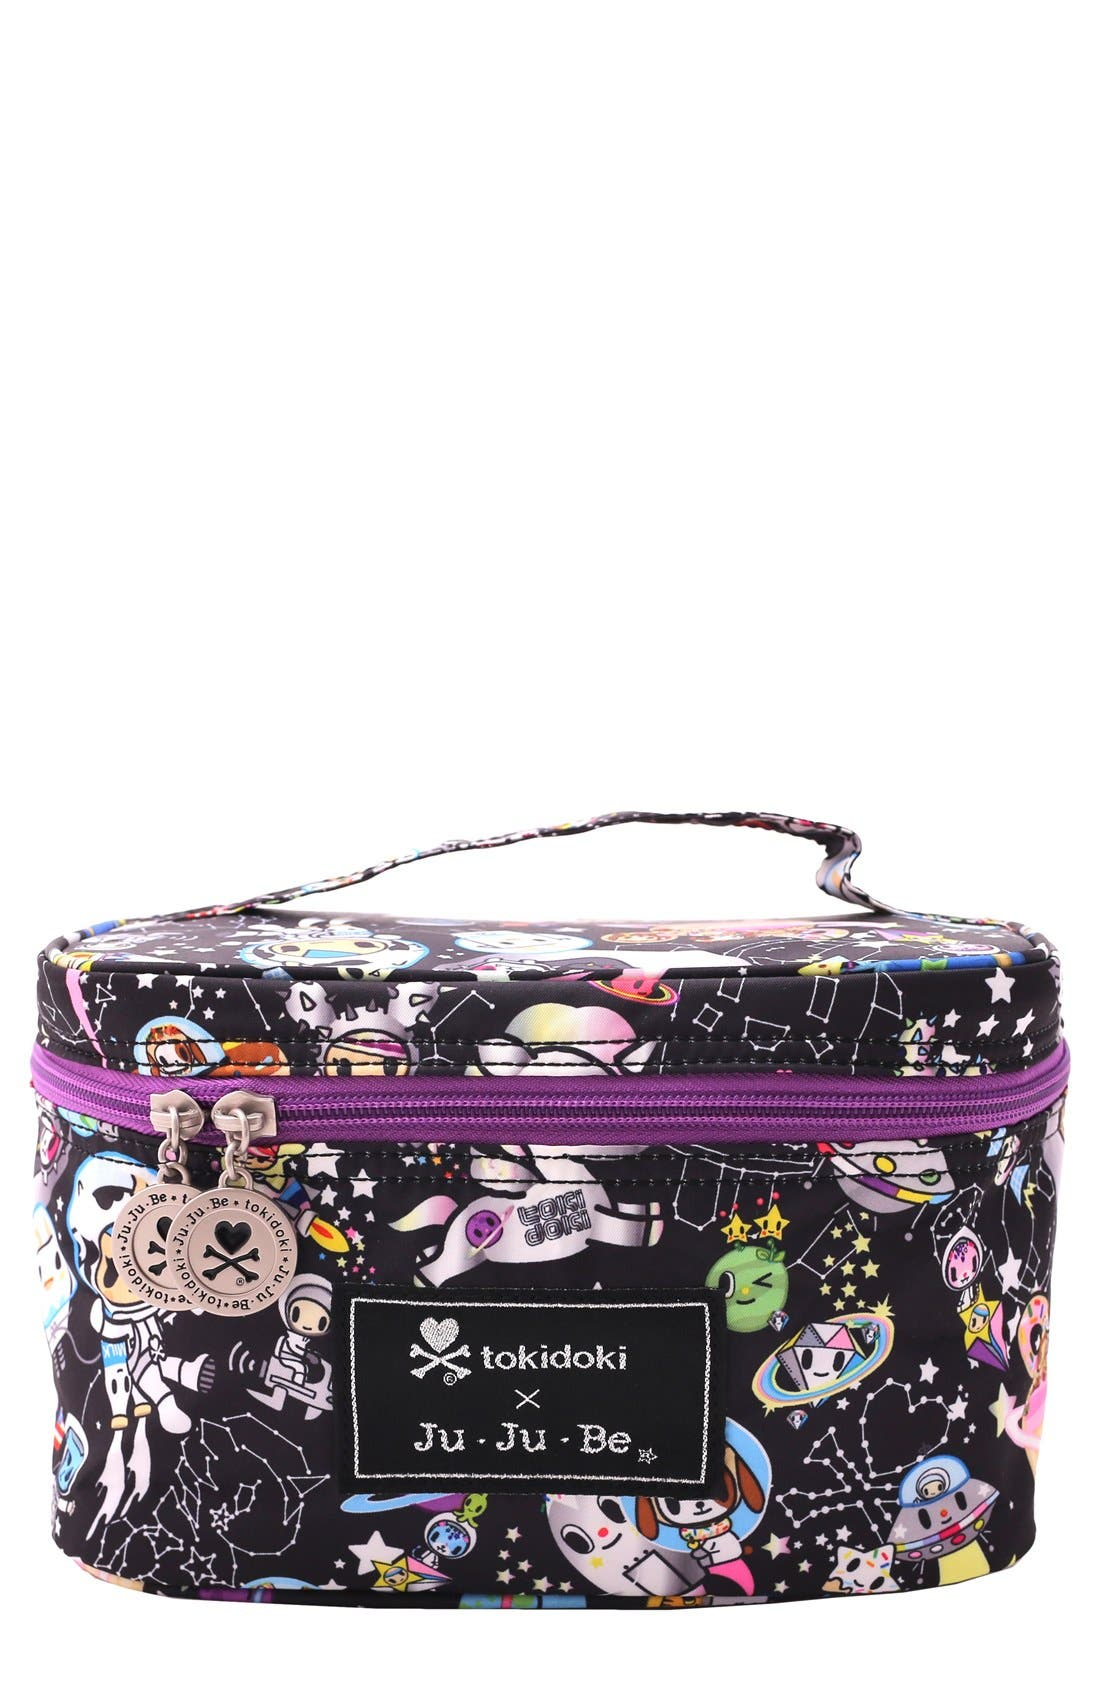 Main Image - Ju-Ju-Be x tokidoki Be Ready Cosmetics Travel Case